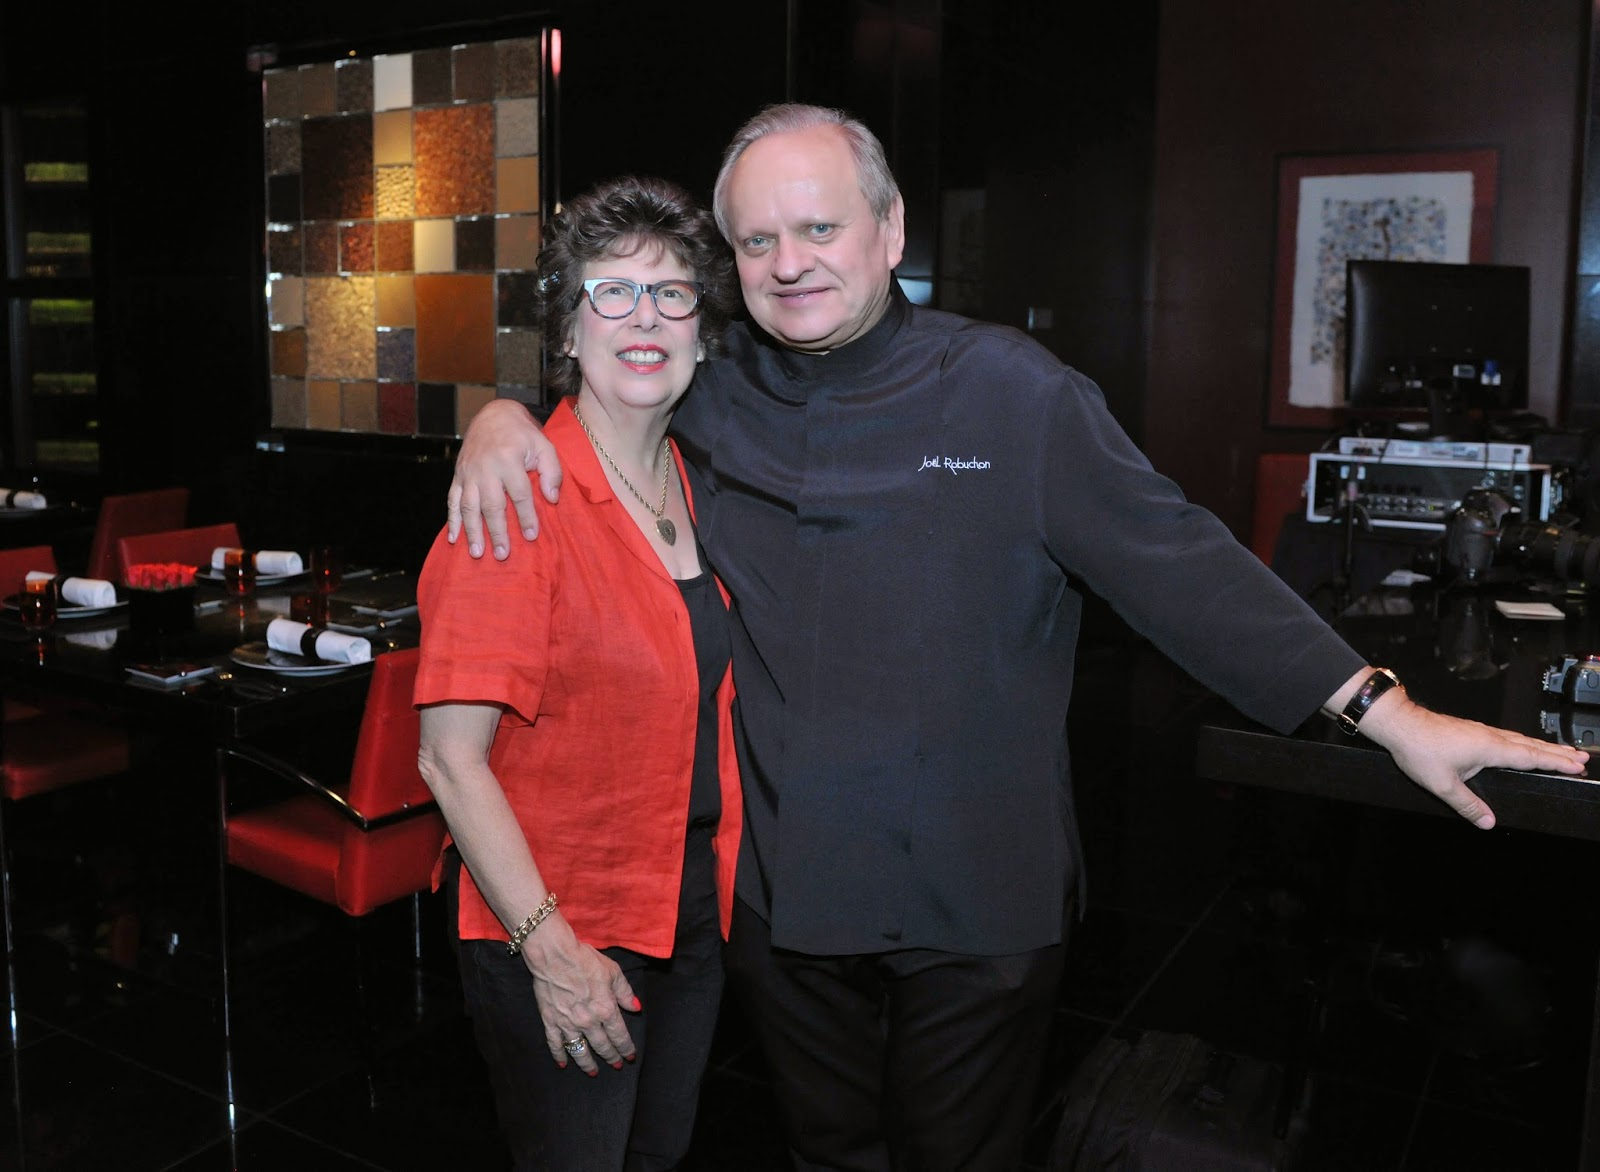 2014 Vegas UnCork'd Joel Robuchon Cooking demo with food stylist Alice Hart L'Atelier de Joel Robuchon